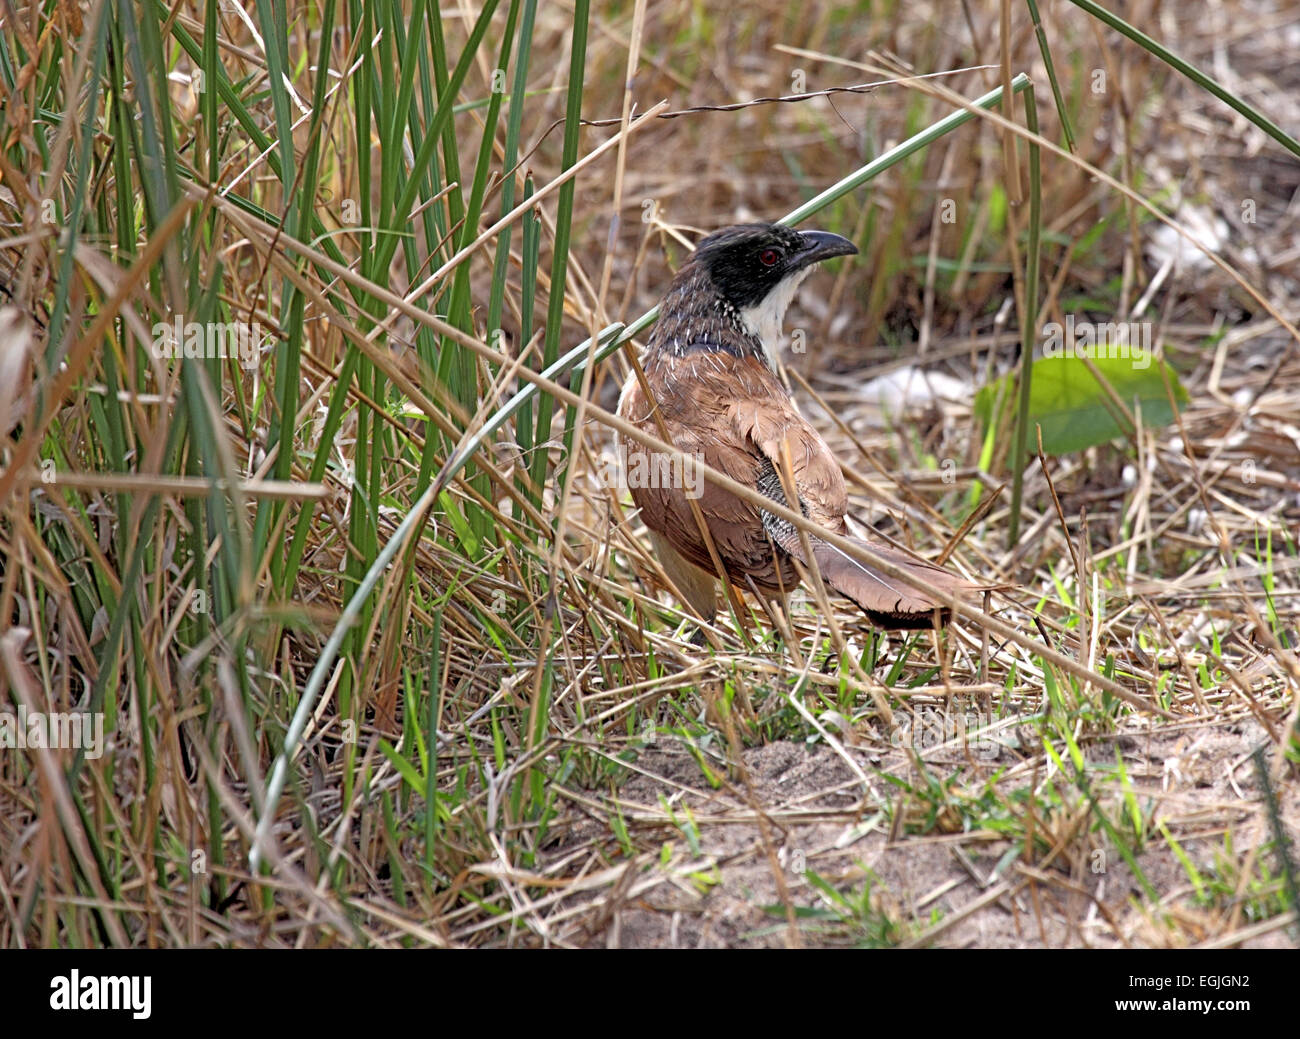 Burchell's coucal foraging on the ground in South Africa - Stock Image